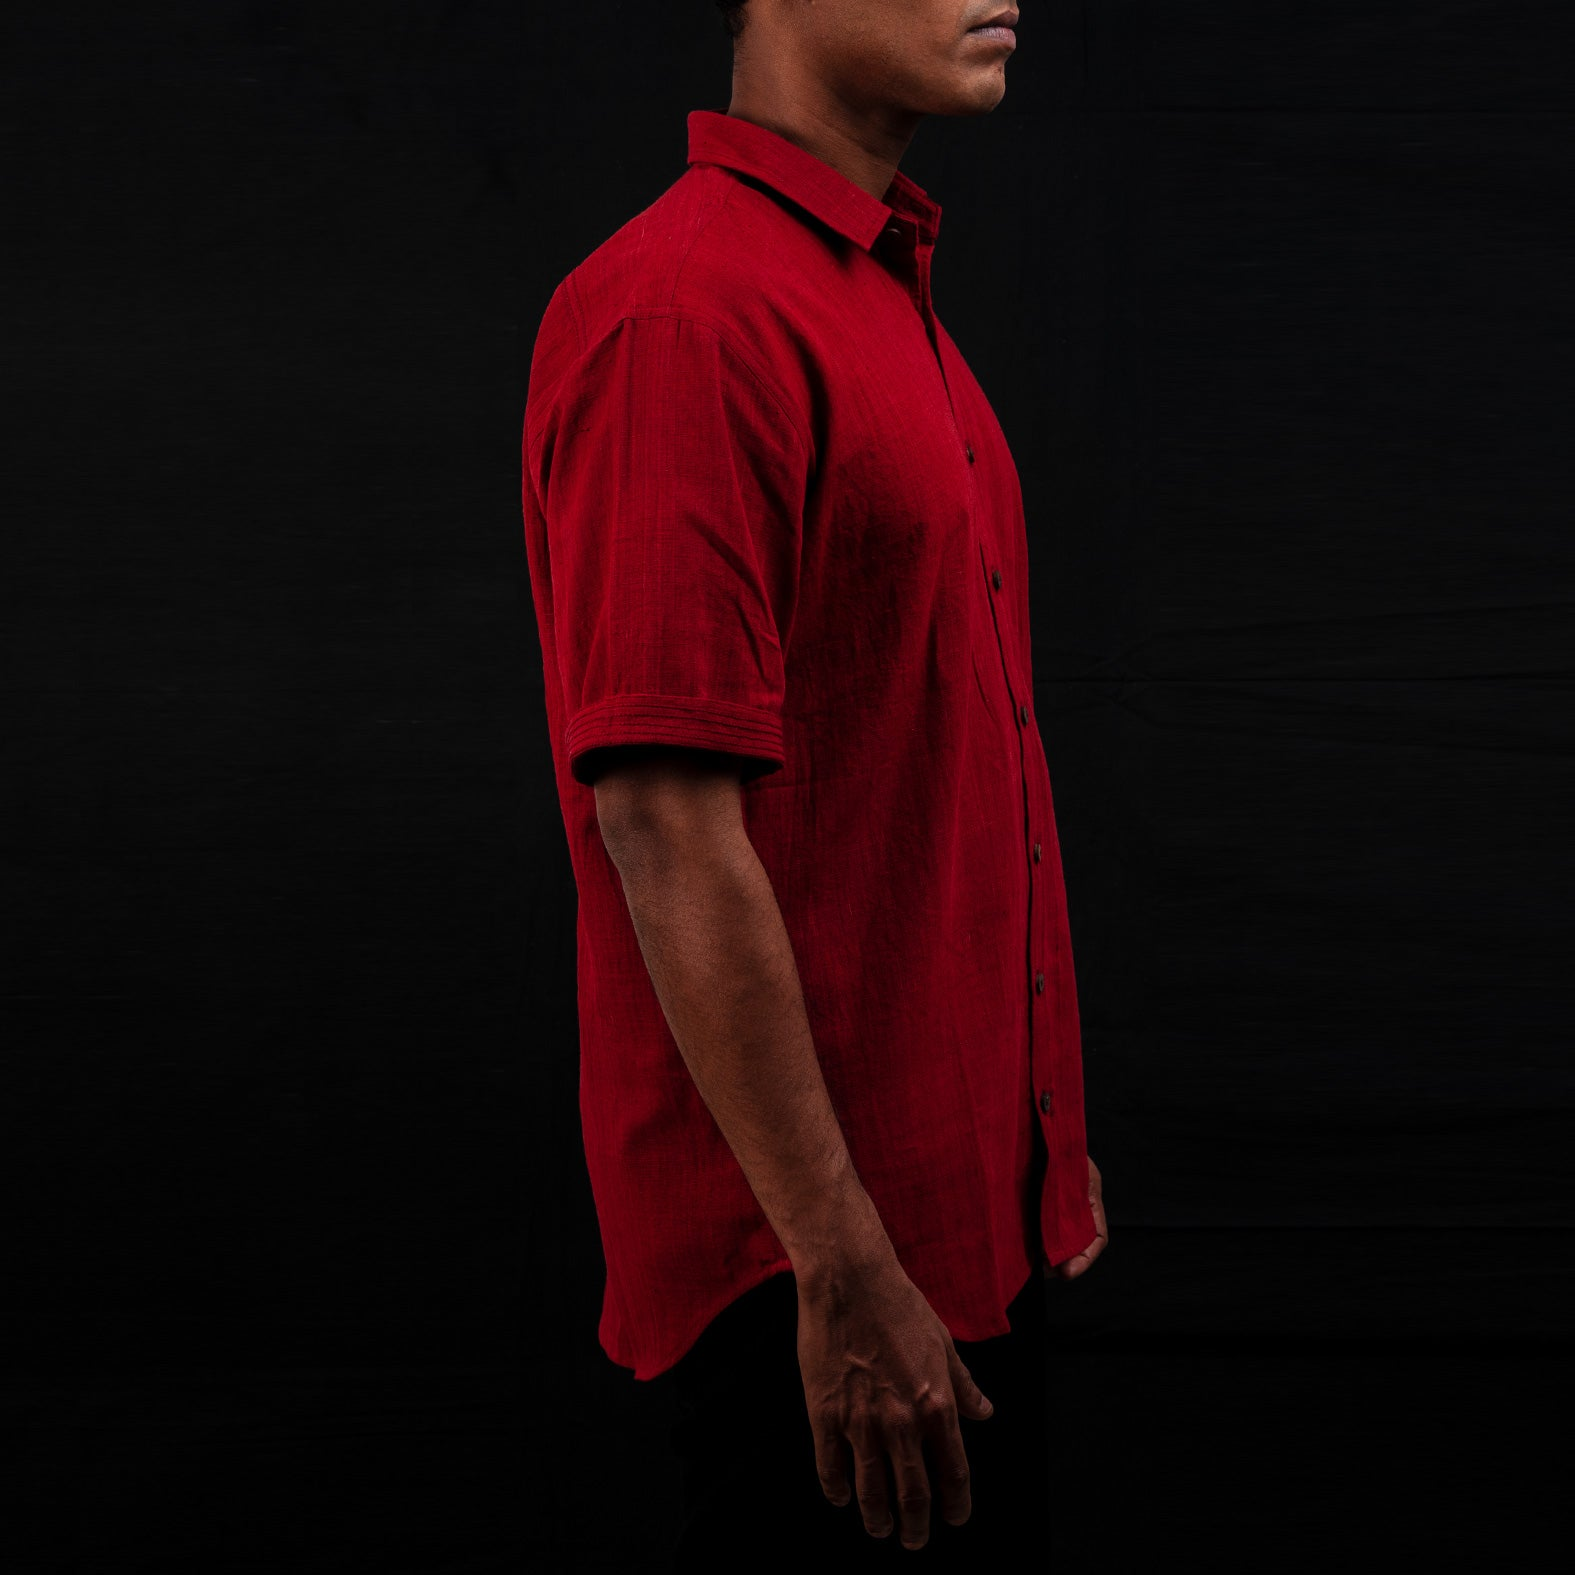 One Red Shirt